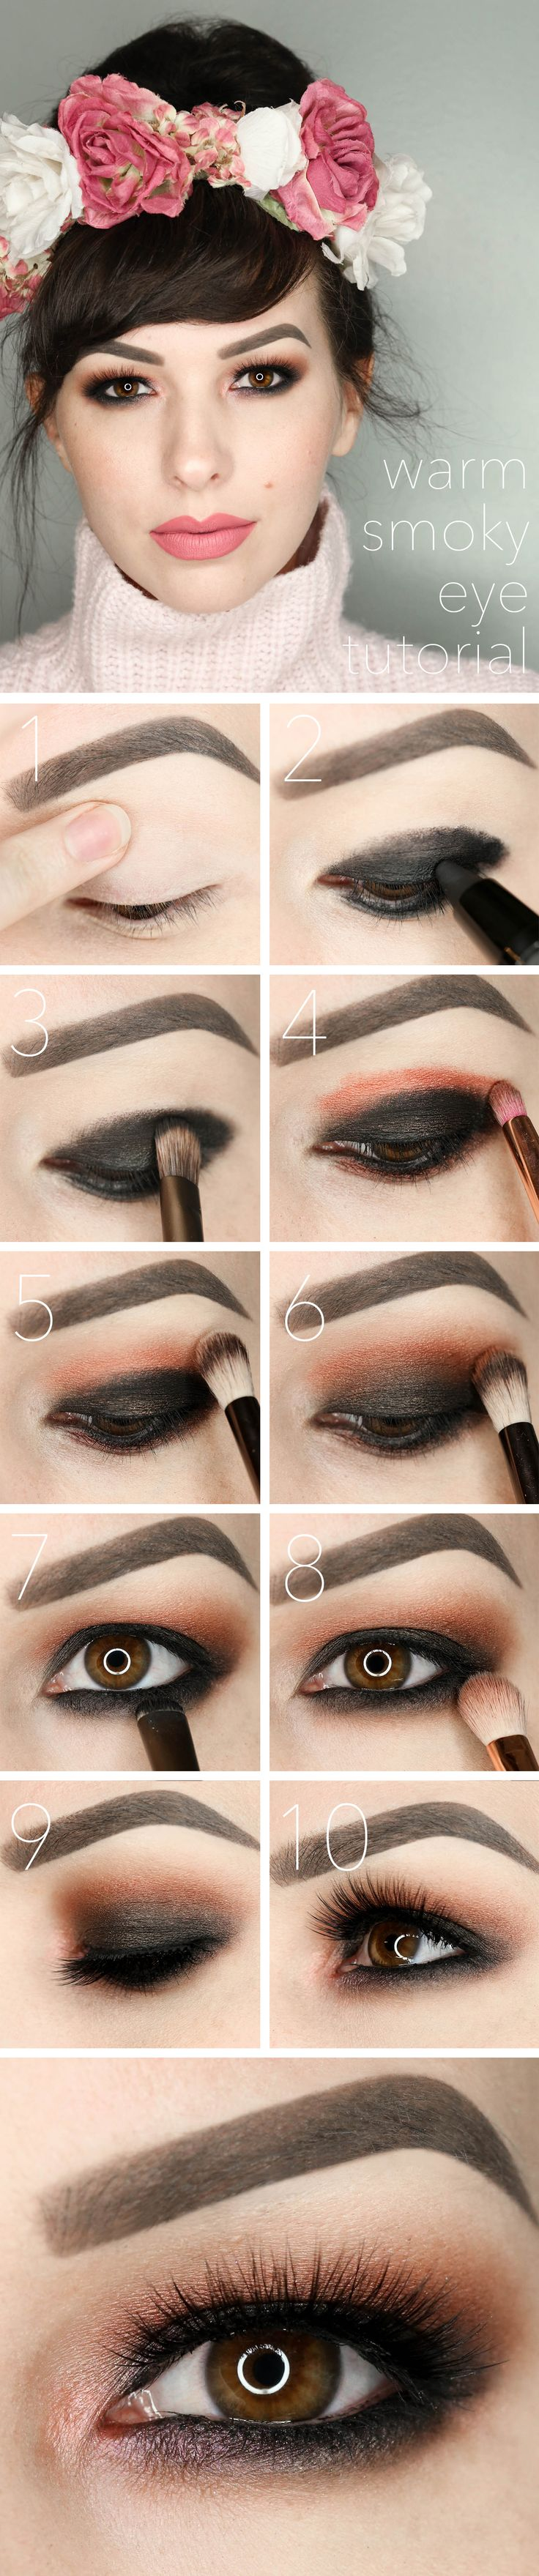 788 best Beauty images on Pinterest